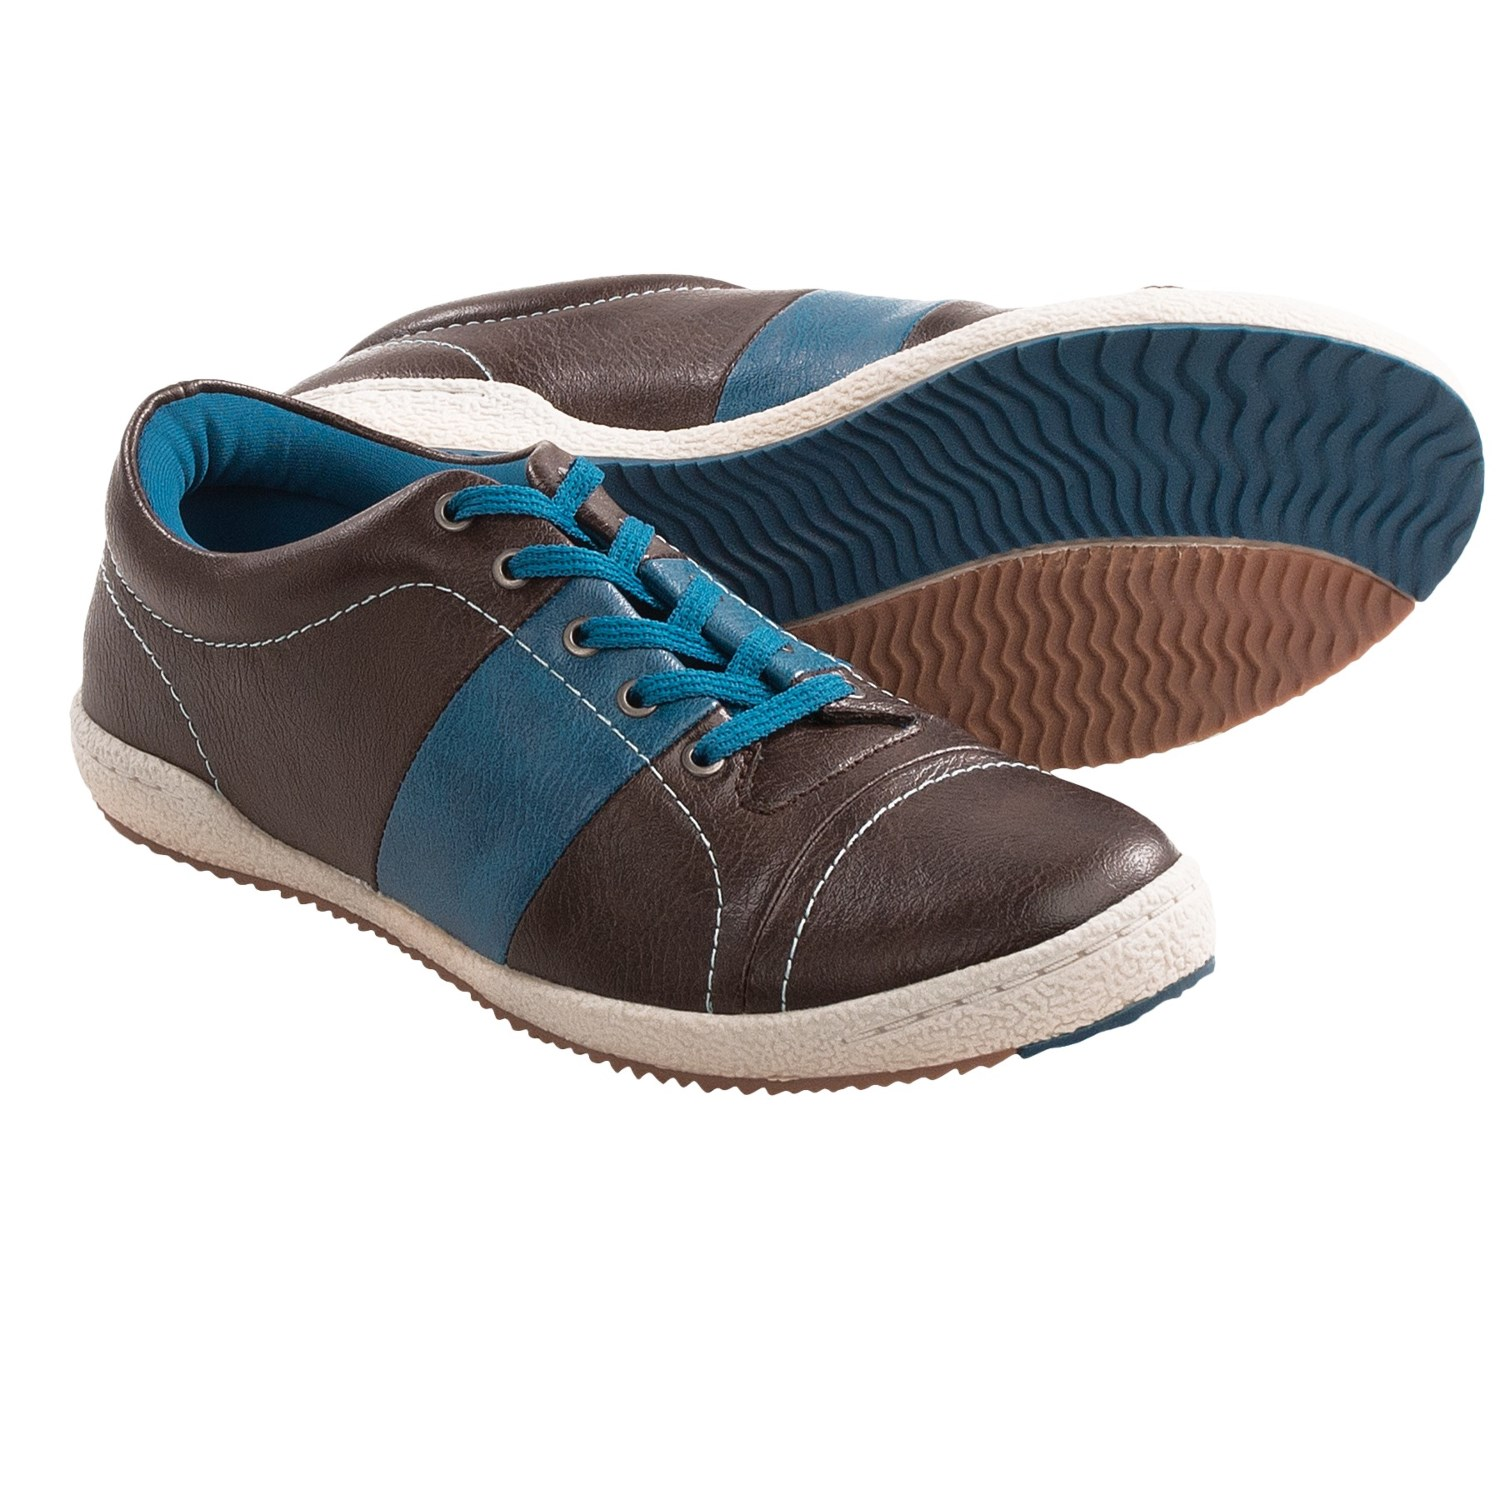 Orthaheel Shoes Online